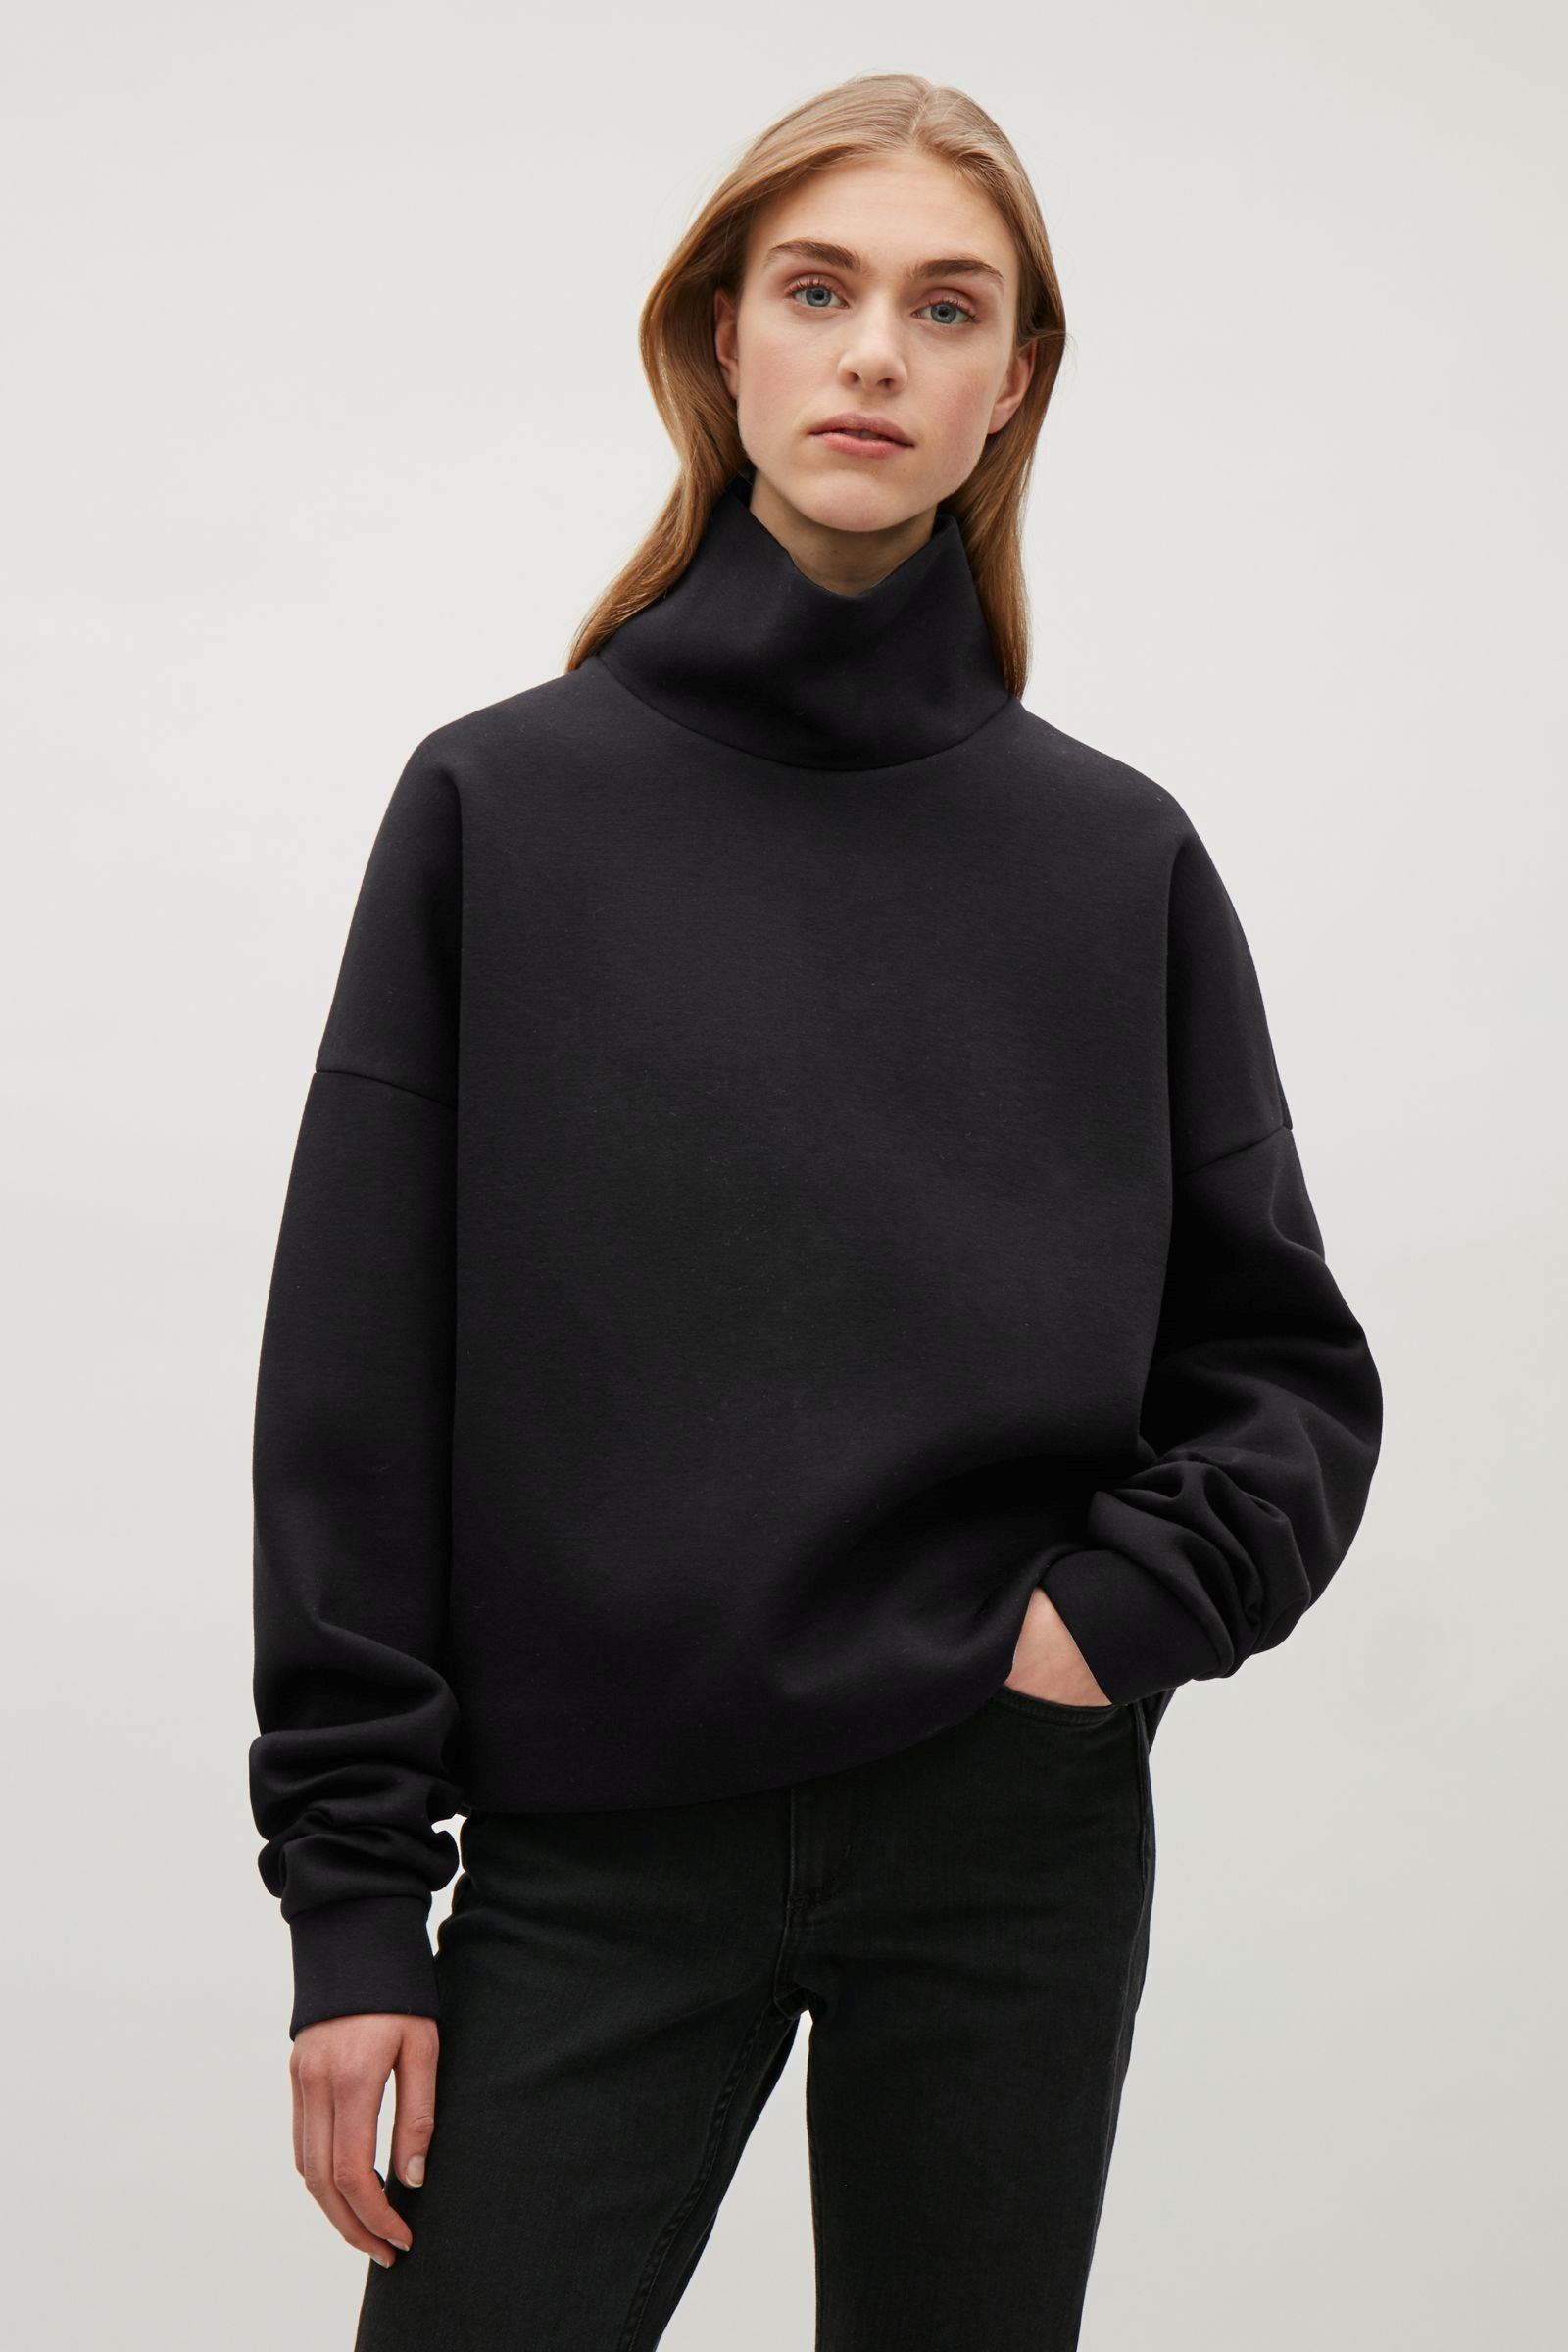 11ba562c21 COS image 7 of Oversized high-neck sweatshirt in Black Black Layers